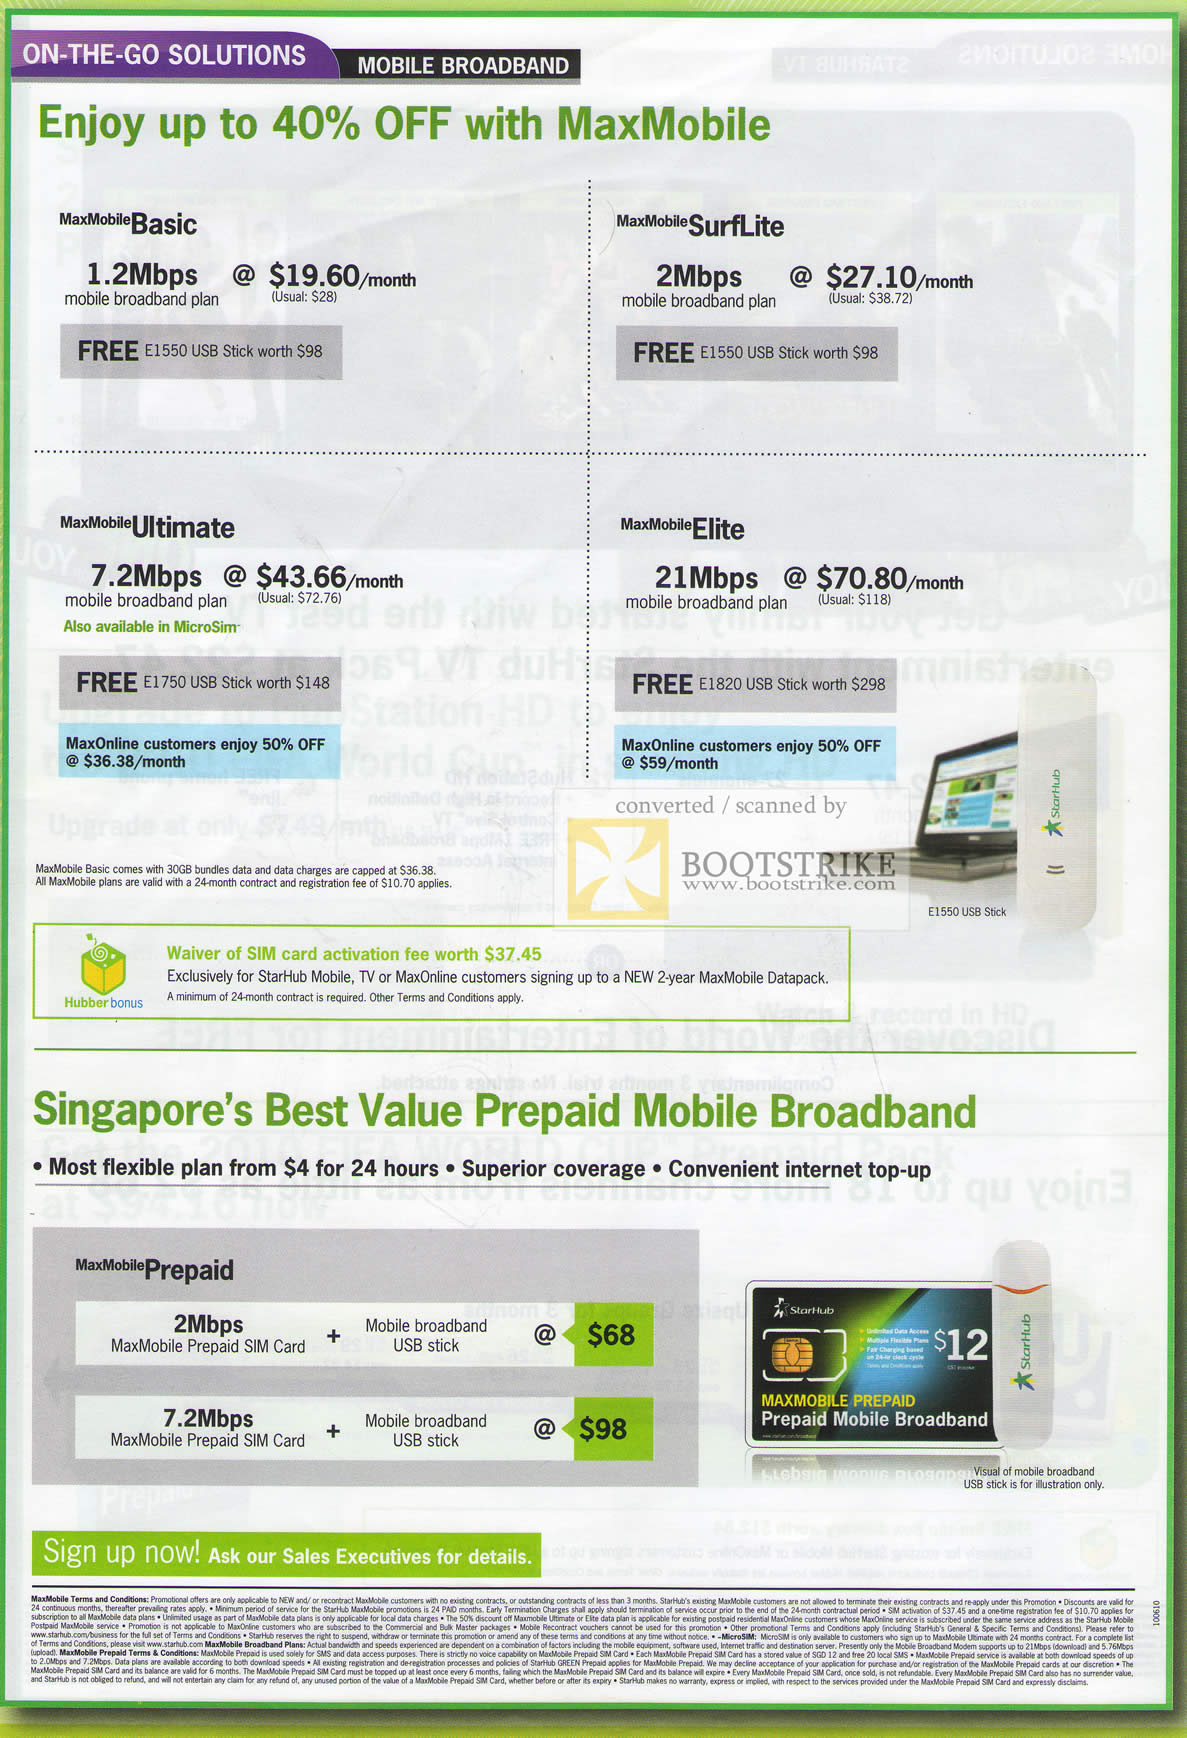 PC Show 2010 price list image brochure of Starhub MaxMobile Basic SurfLite Ultimate Elite Prepaid Mobile Broadband